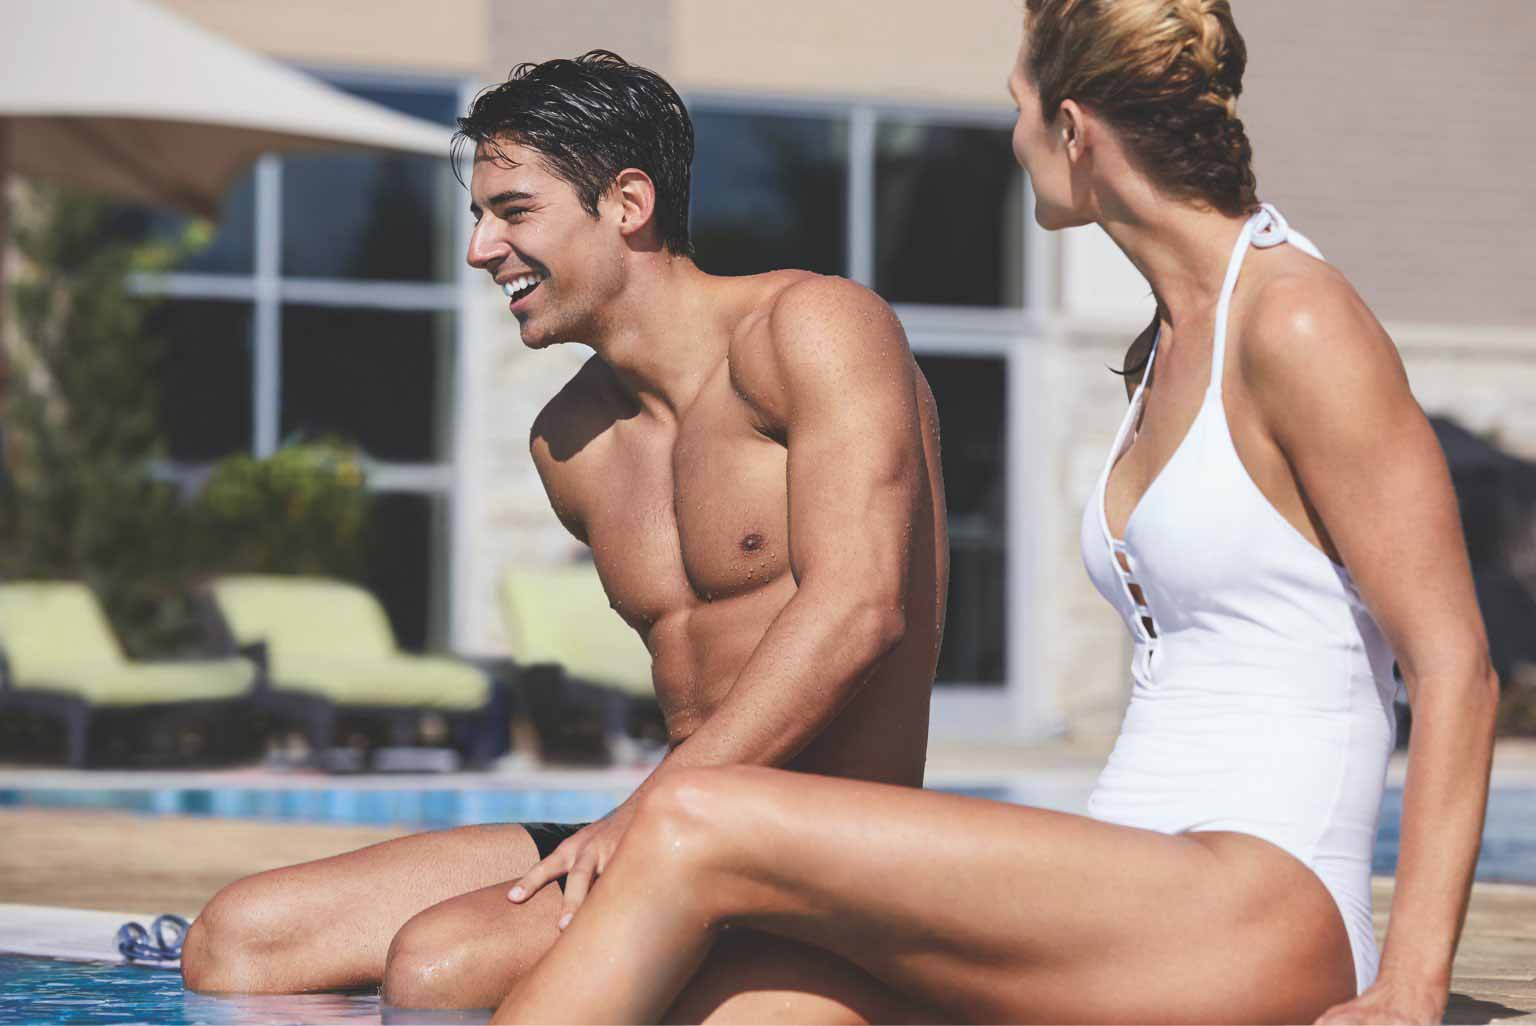 A smiling young woman and man in swimwear sit together on a sunny pool deck